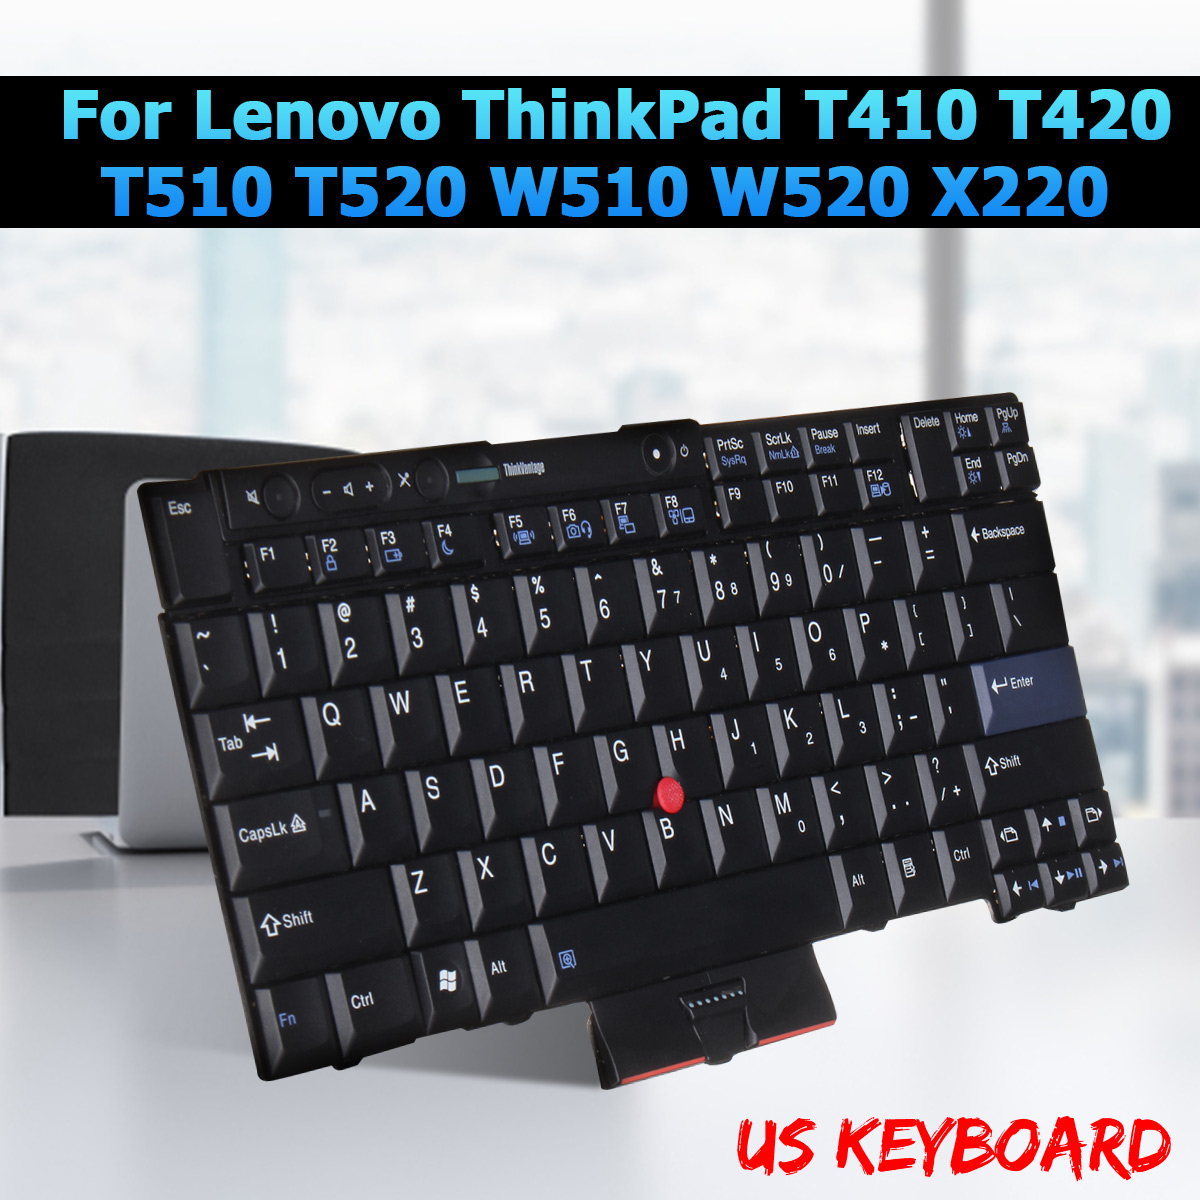 English Keyboard For Lenovo ThinkPad T410 T420 T510 T520 W510 W520 X220 Notebook Laptop Replacement Keyboards стоимость